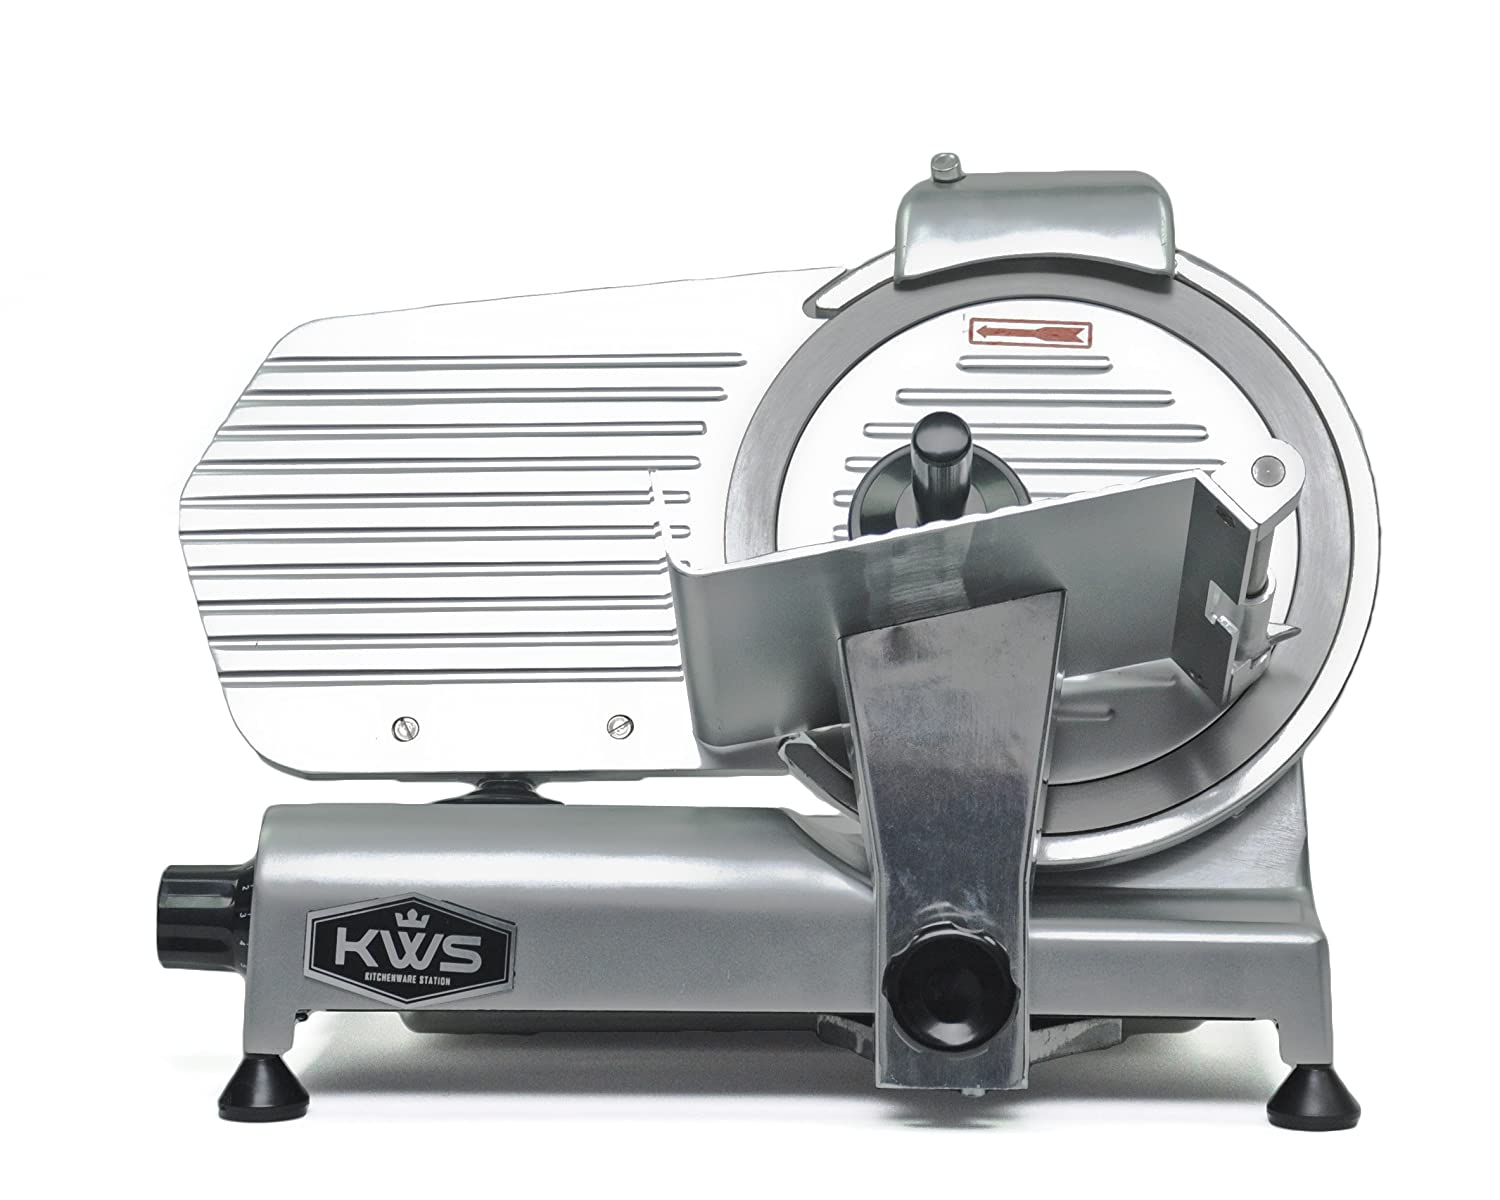 KWS Commercial 320w Electric Meat Slicer 10 Frozen Meat Deli Slicer Coffee Shop restaurant and Home Use Low Noises Stainless Steel Blade-Silver